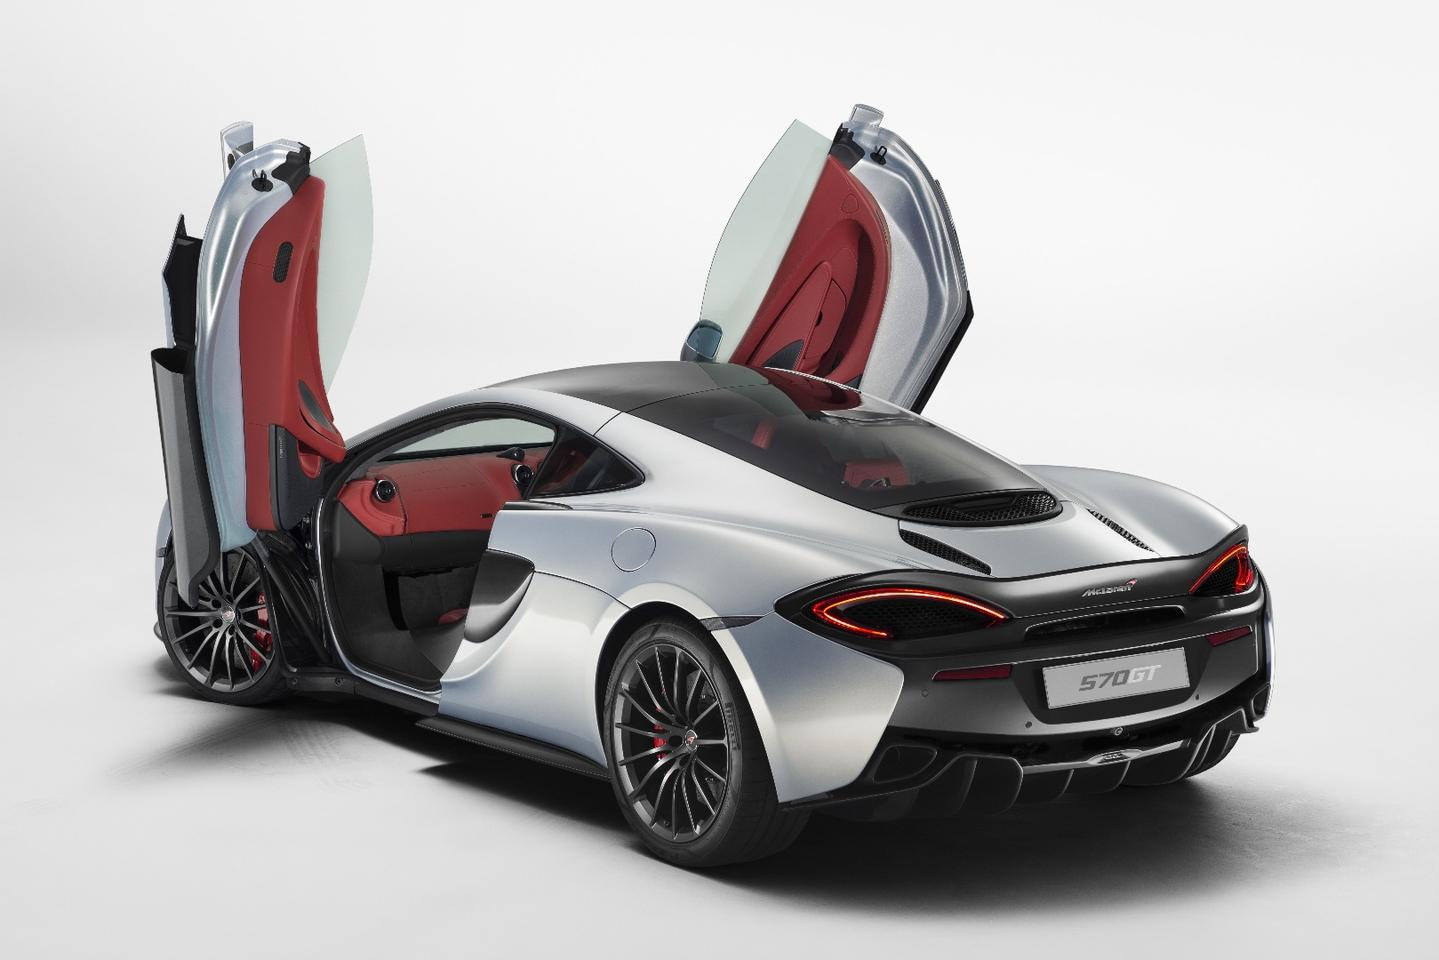 McLaren's dihedral doors and a low, narrow sill should make it easier for people to get into the GT